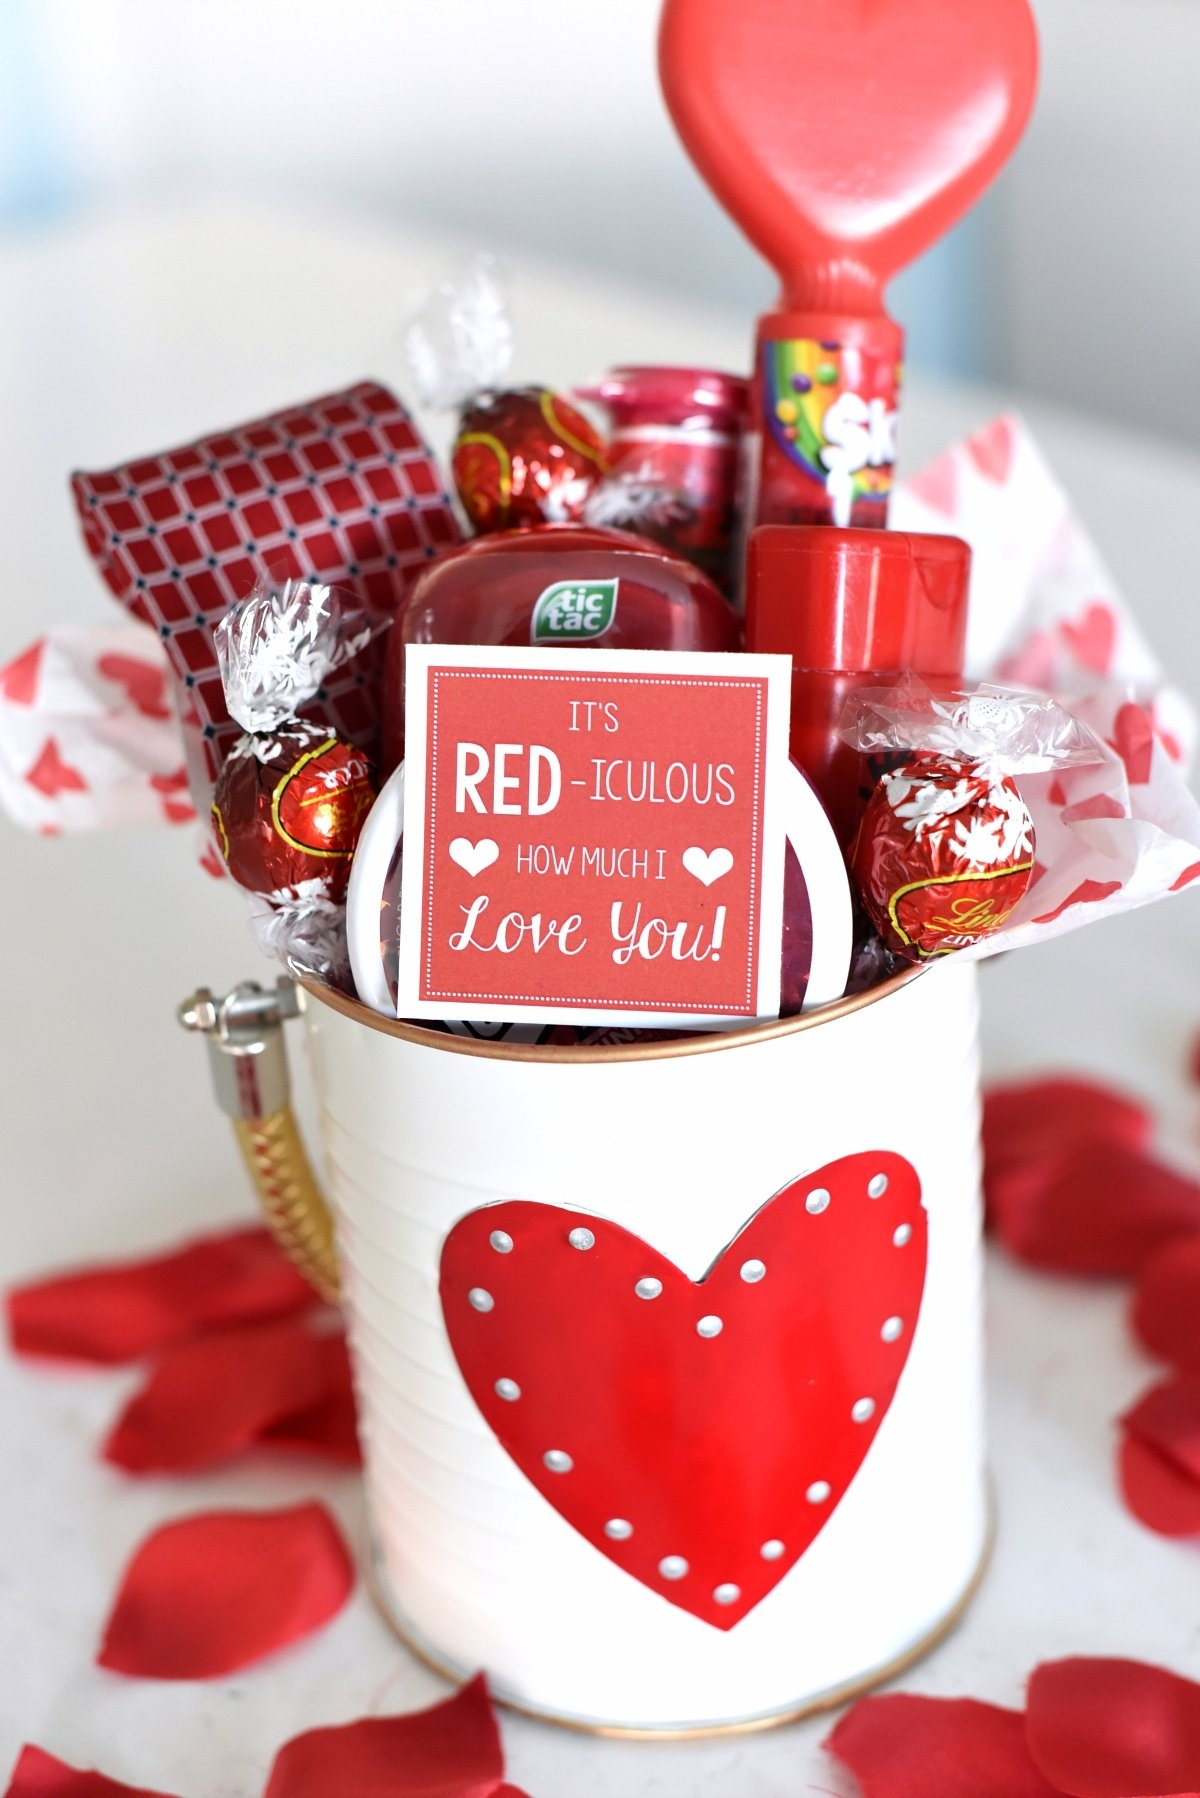 10 Trendy Cute Valentines Day Ideas For Husband cute valentines day gift idea red iculous basket 5 2020